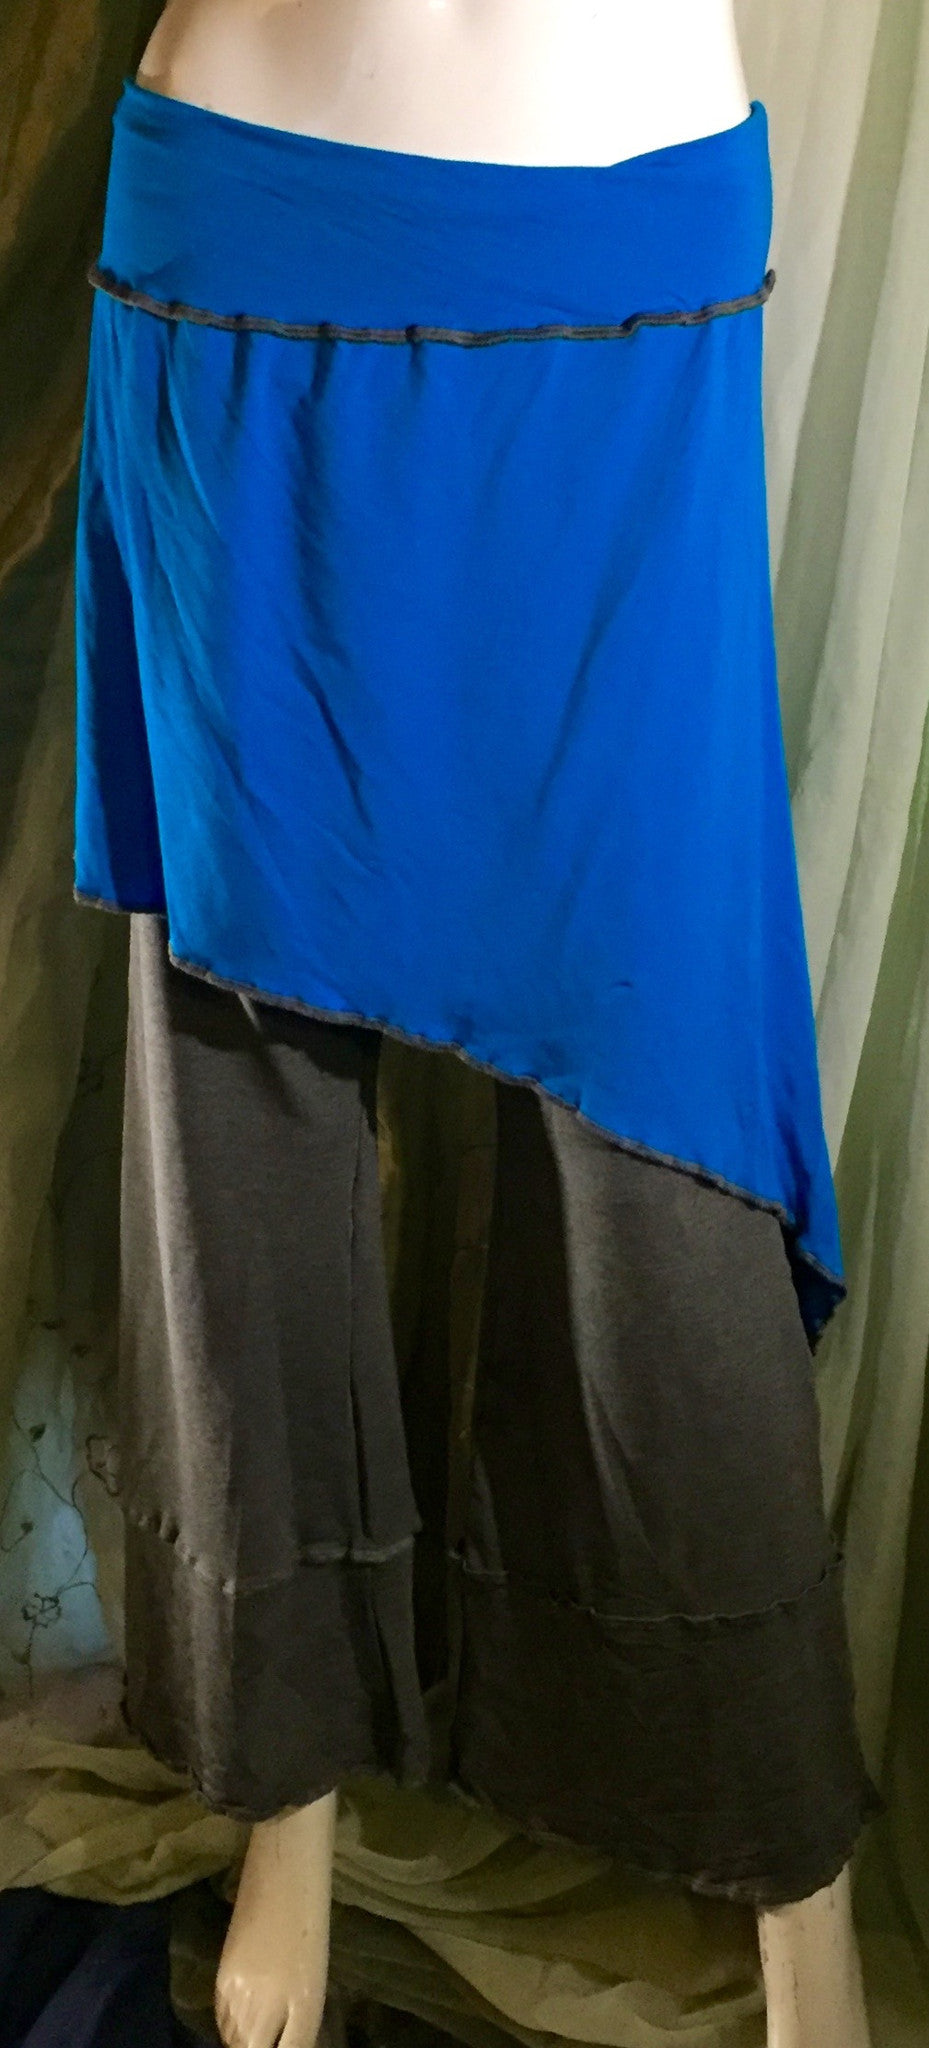 Athena Skirt in Bright Blue - M/L